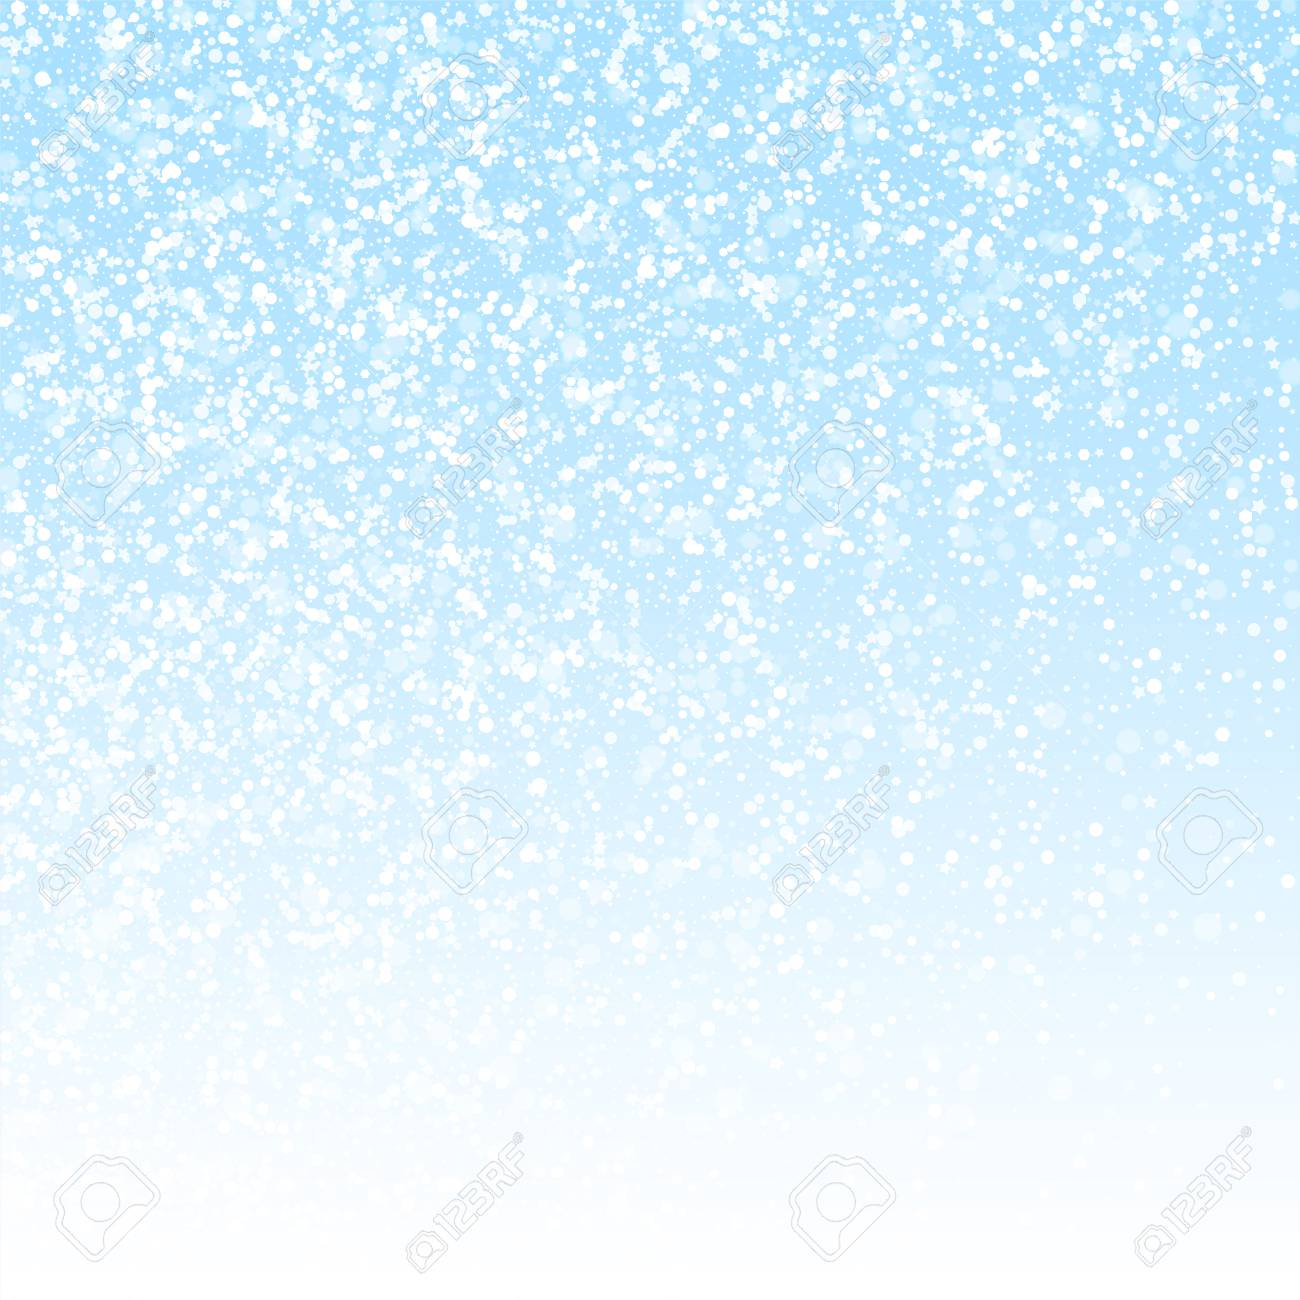 Magic stars Christmas background. Subtle flying snow flakes and stars on winter sky background. Awesome winter silver snowflake overlay template. Ravishing vector illustration. - 126653114